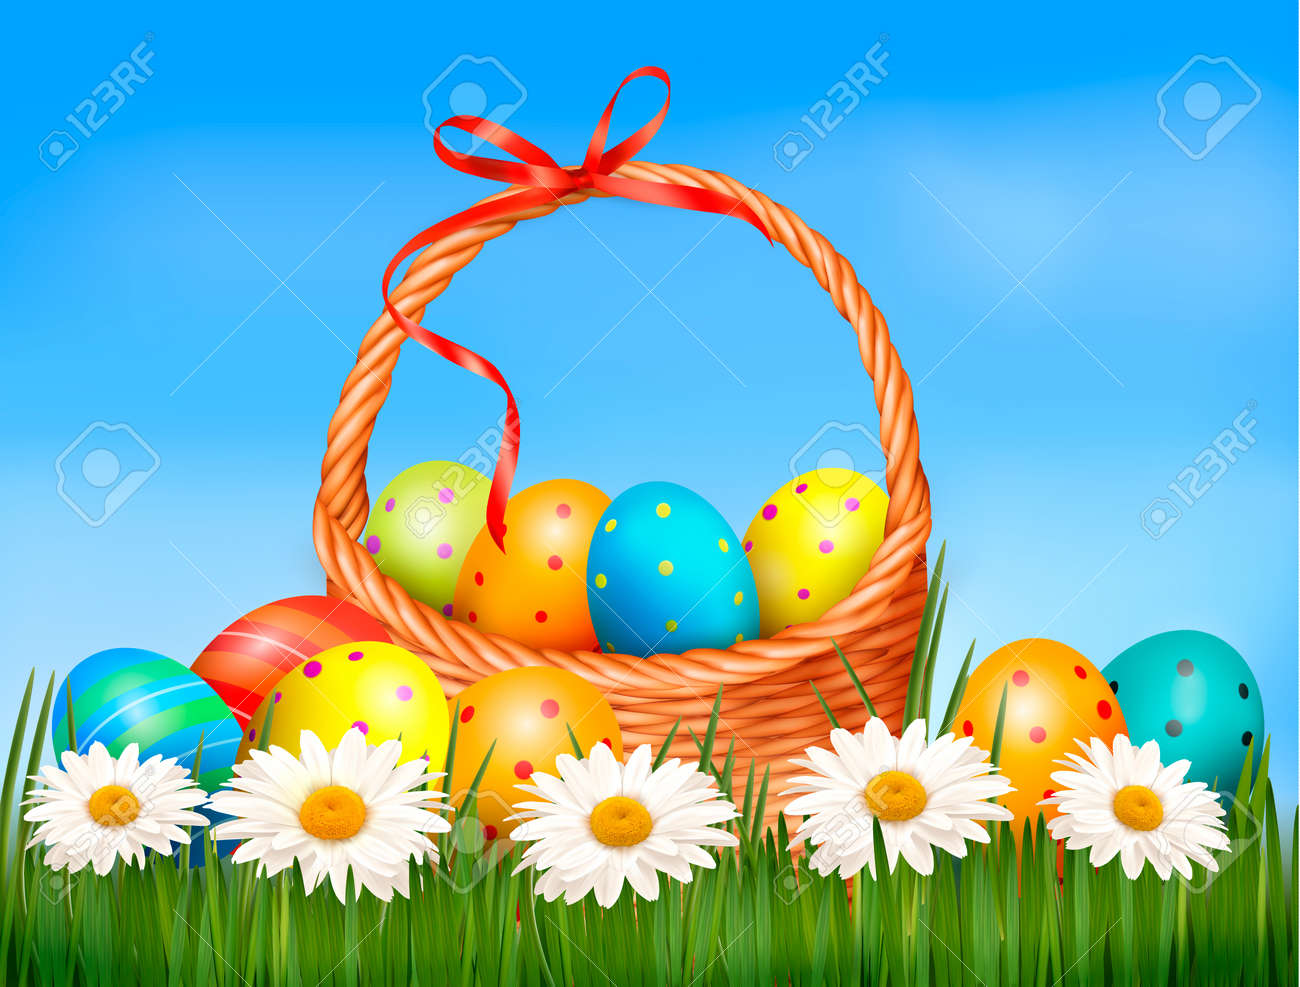 Easter background  Easter eggs and flower with basket in the grass Stock Vector - 18252368